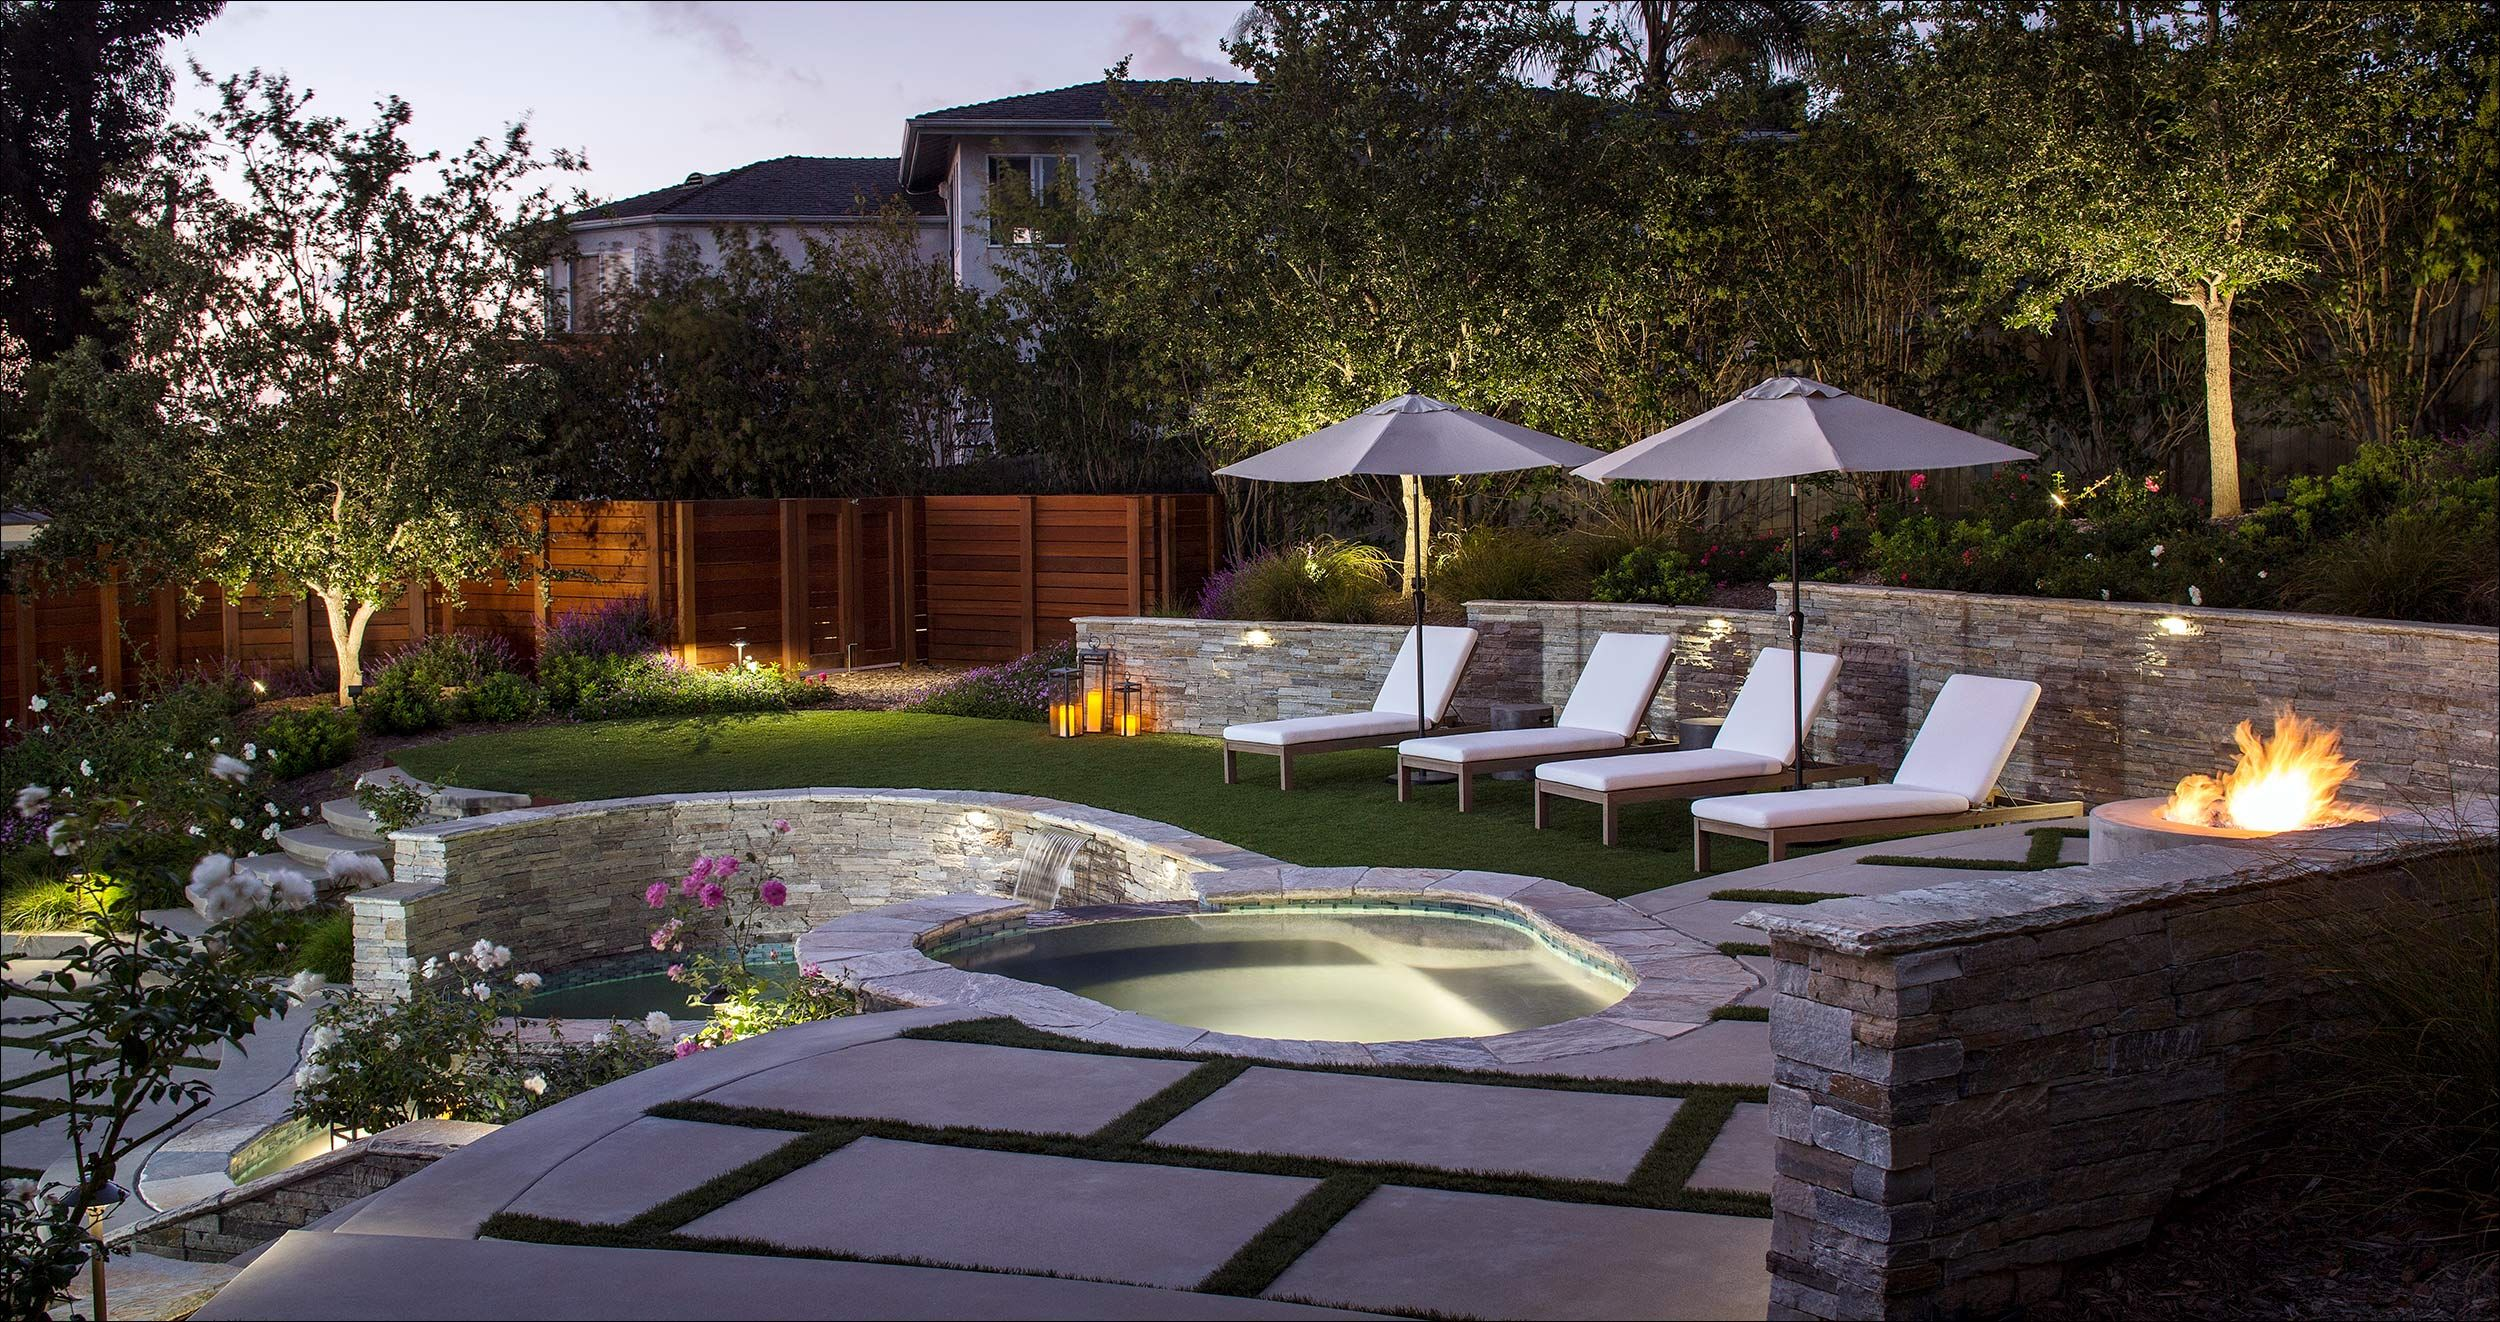 SanDiego_LandscapeDesign_NaturalStone_Pool.jpg